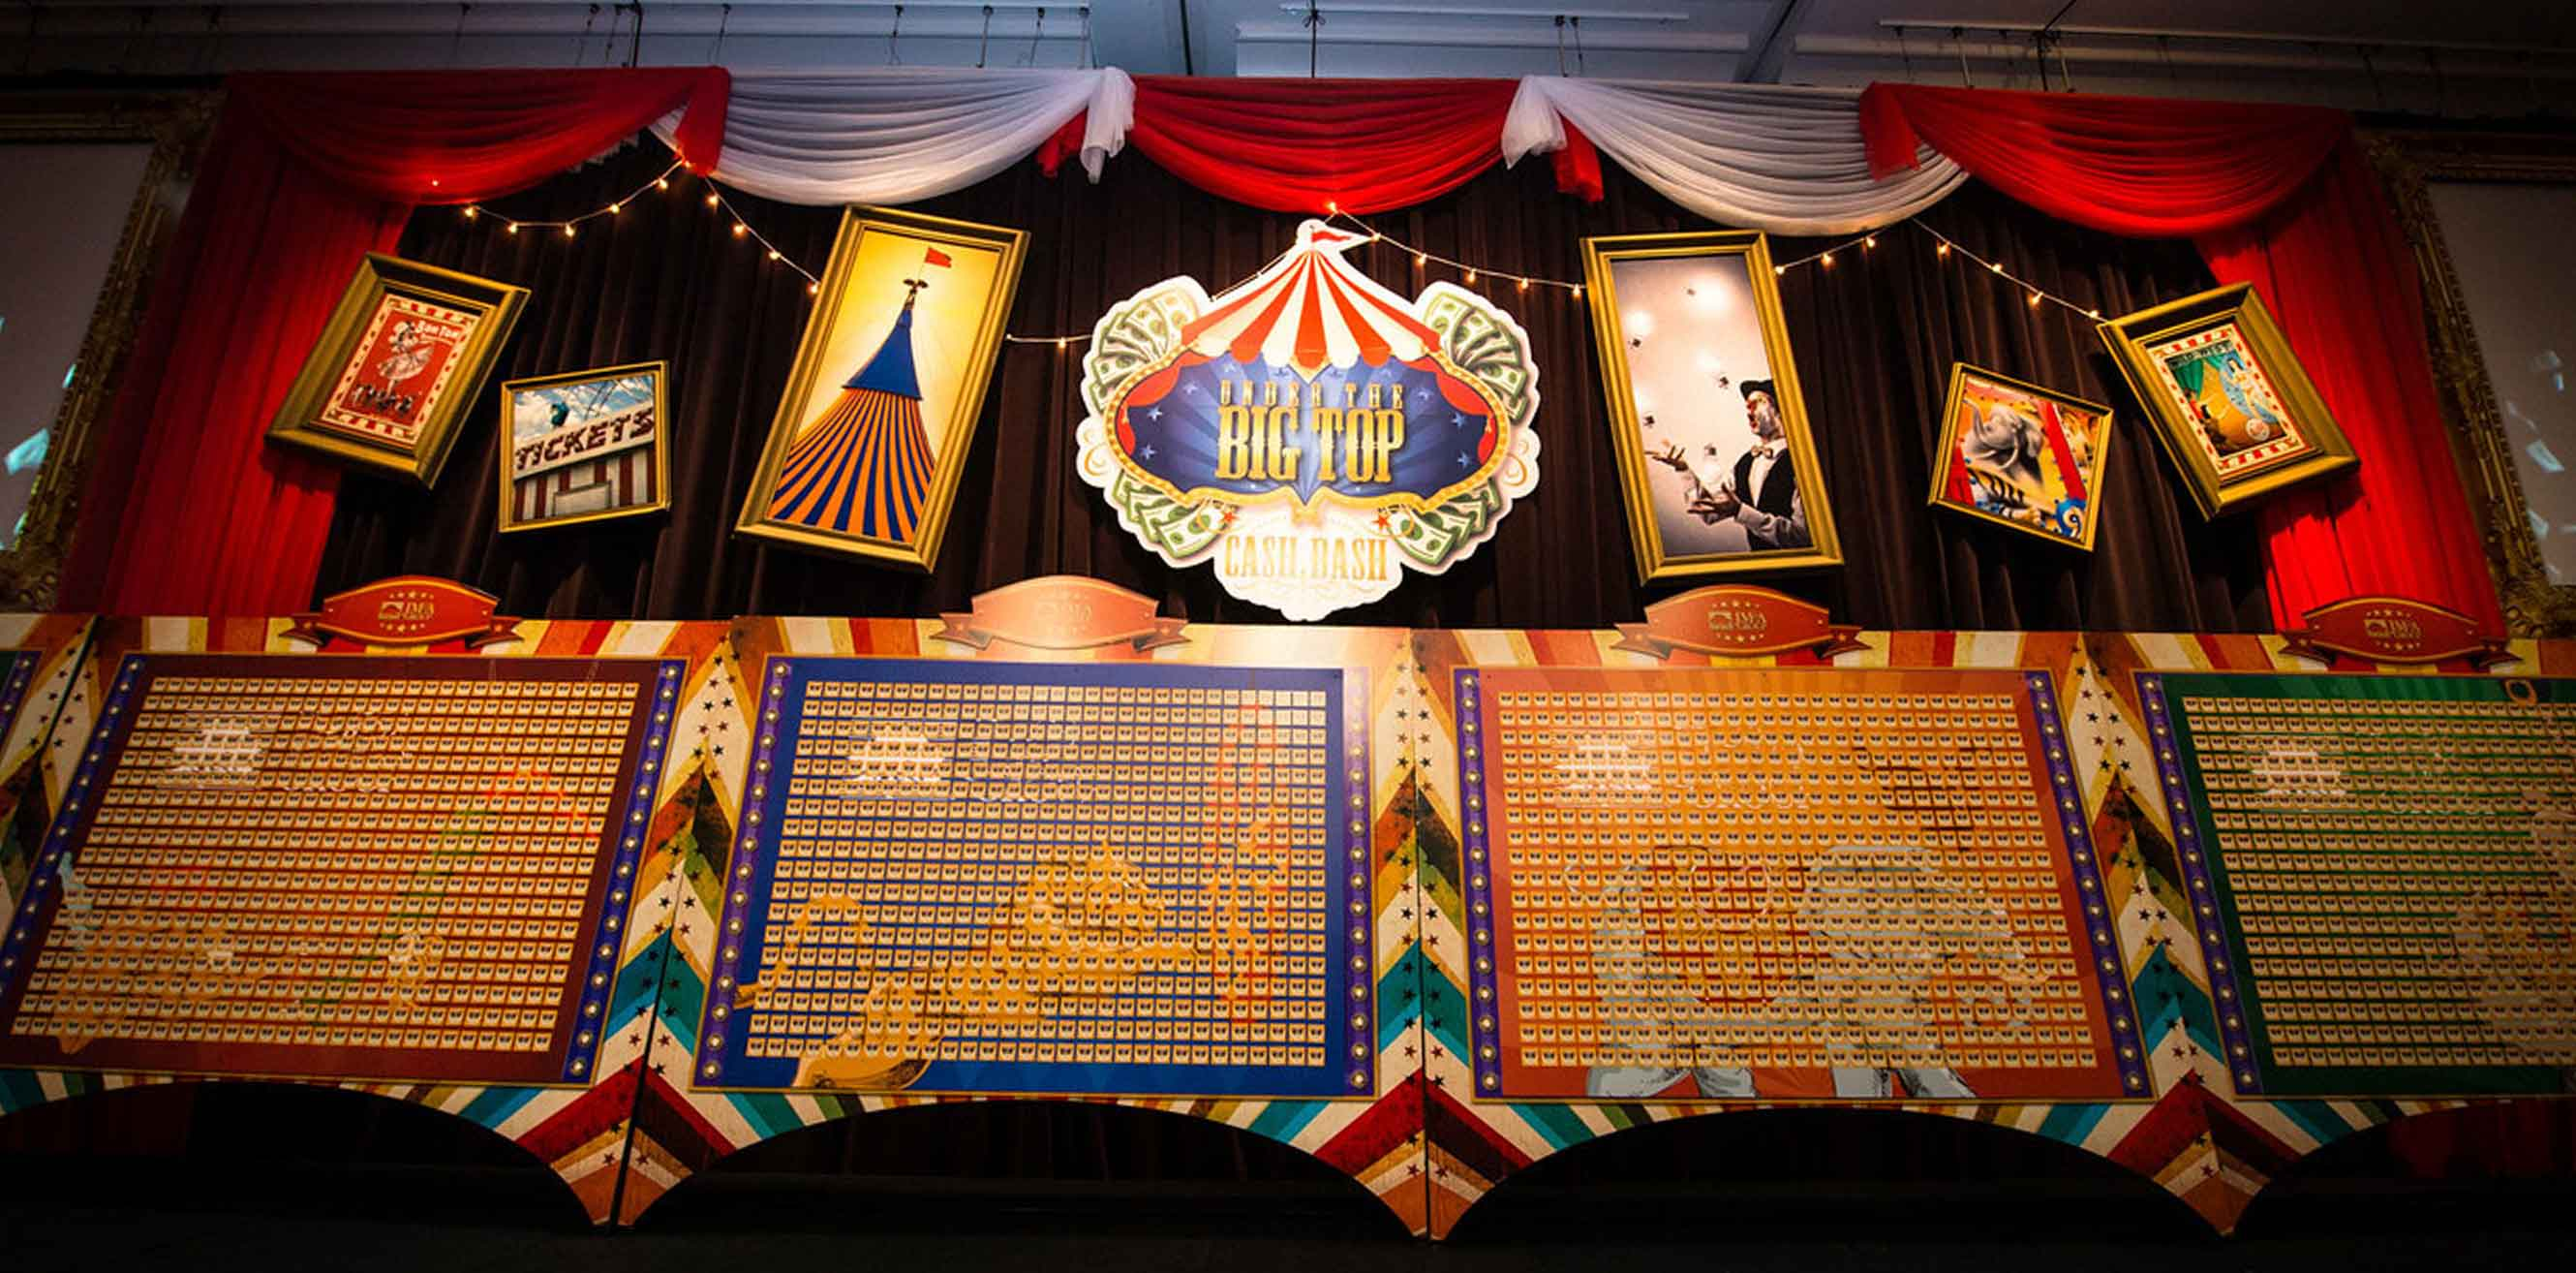 Circus themed signage